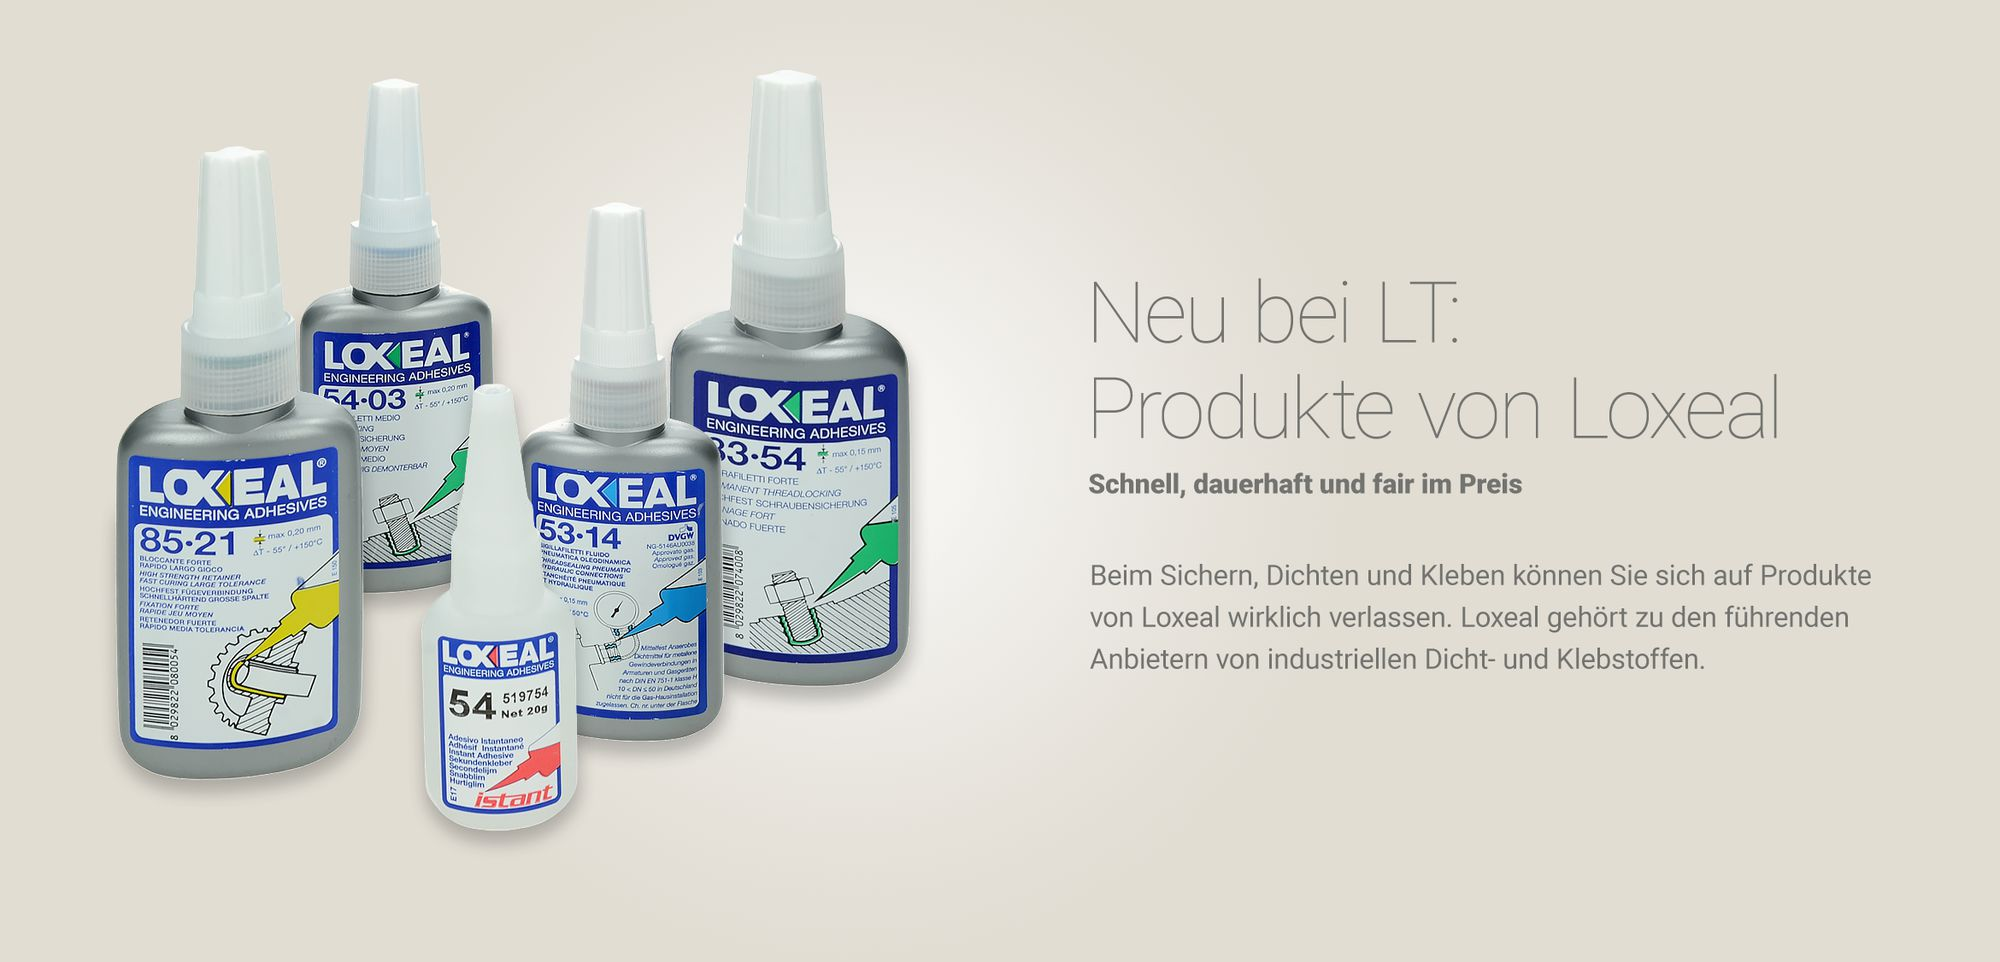 Loxeal bei LT!